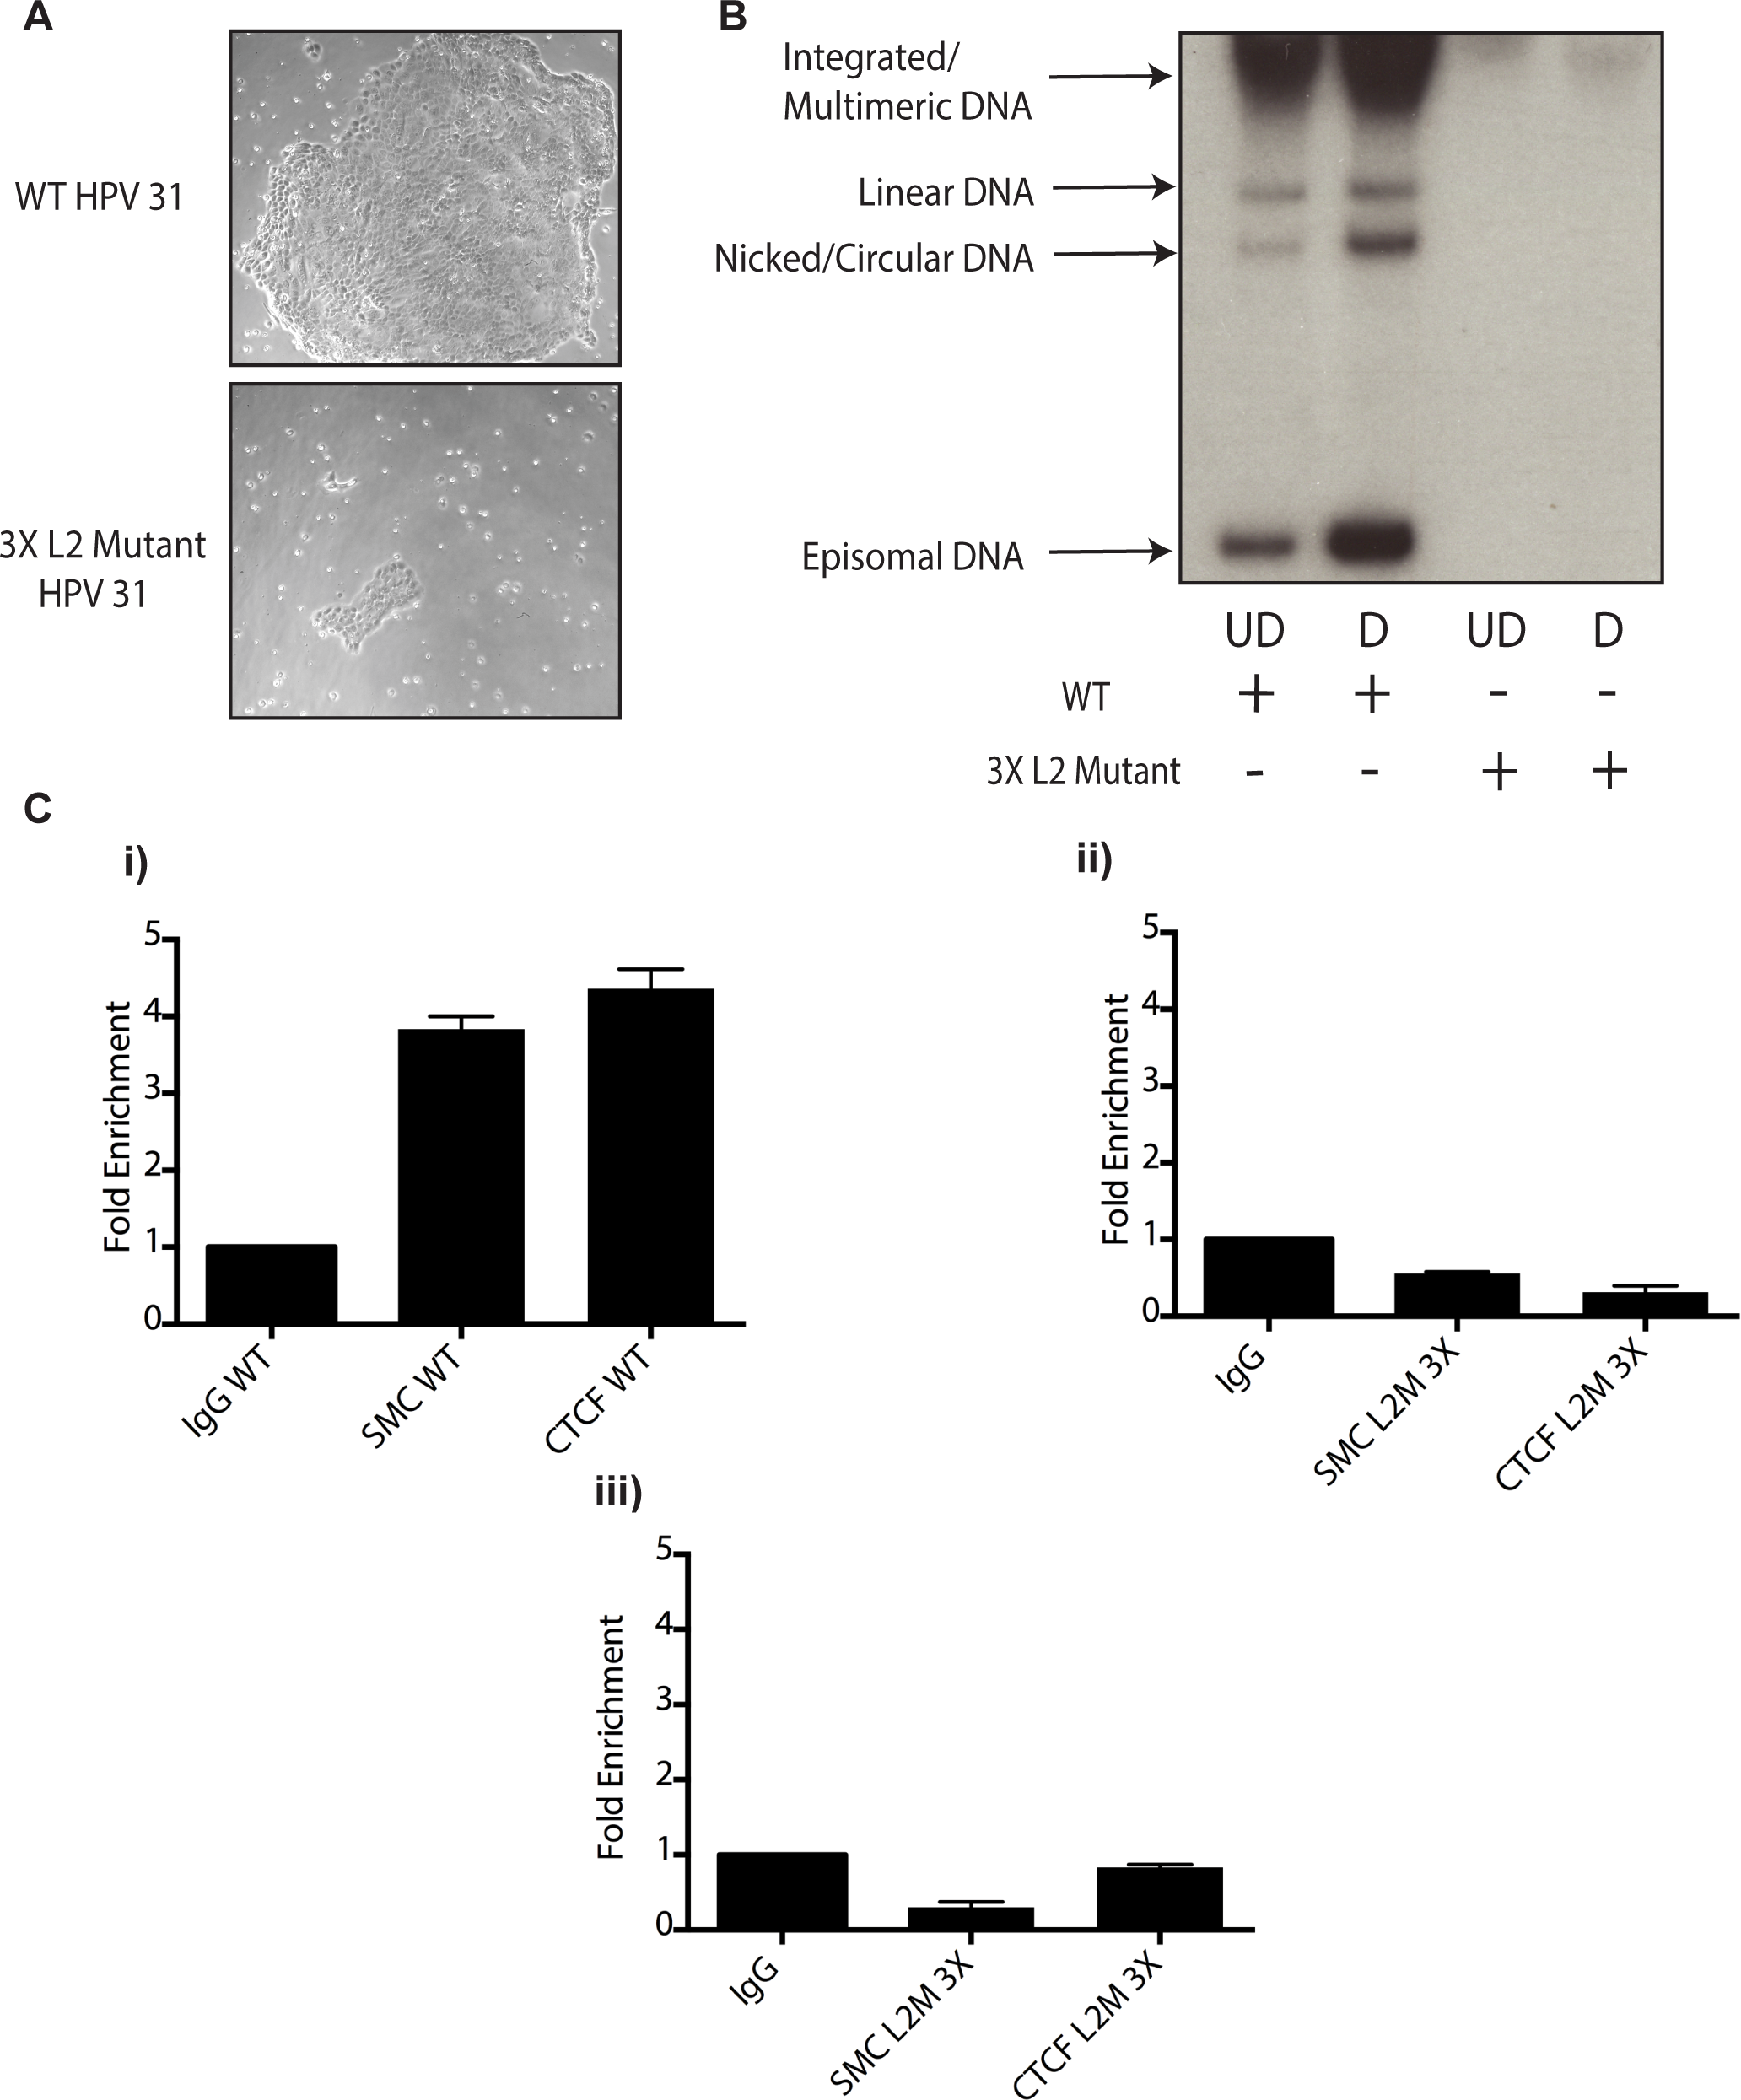 Mutation of 3 CTCF core consensus sequences within the L2 coding region of the HPV 31 genome results in impaired growth, loss of episomes, and rapid integration into the host genome.